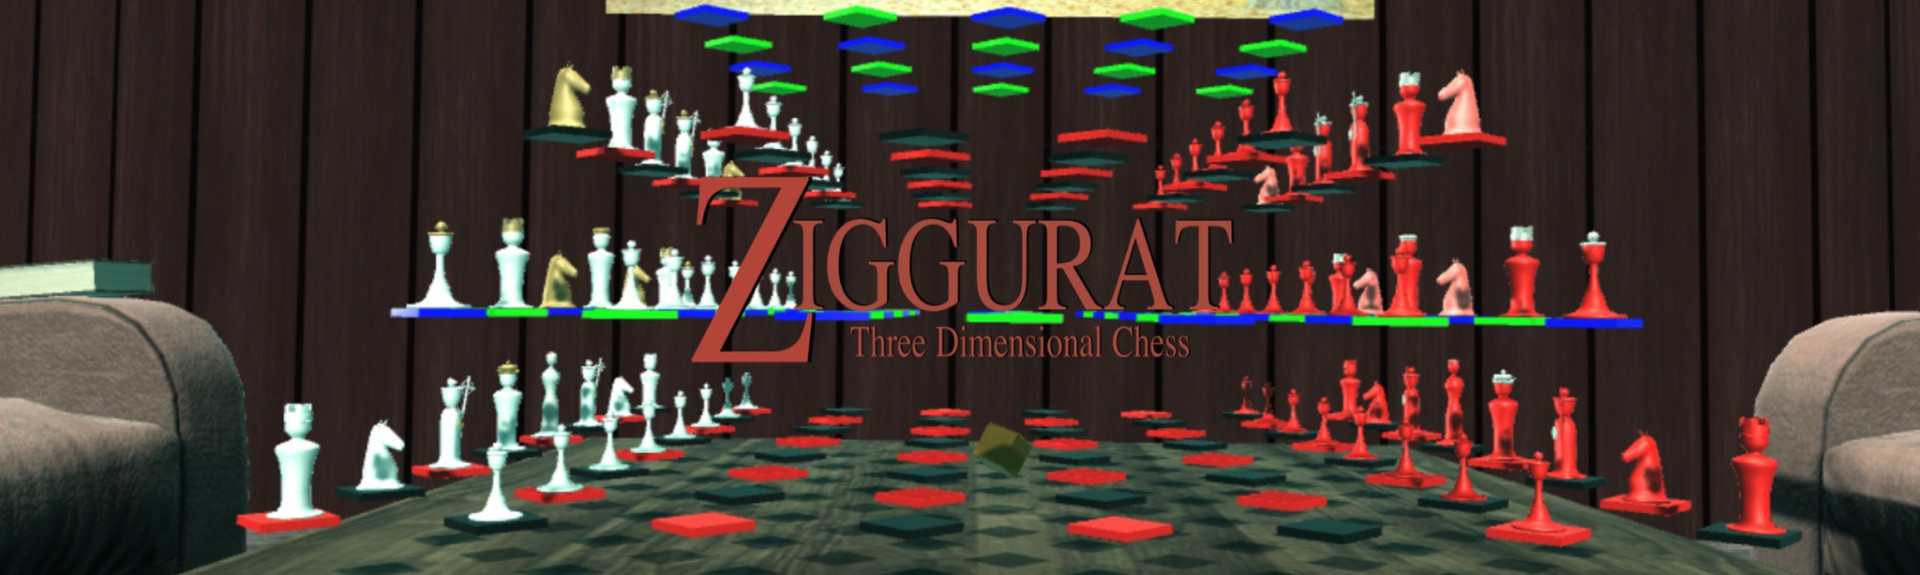 Ziggurat Three Dimensional Chess